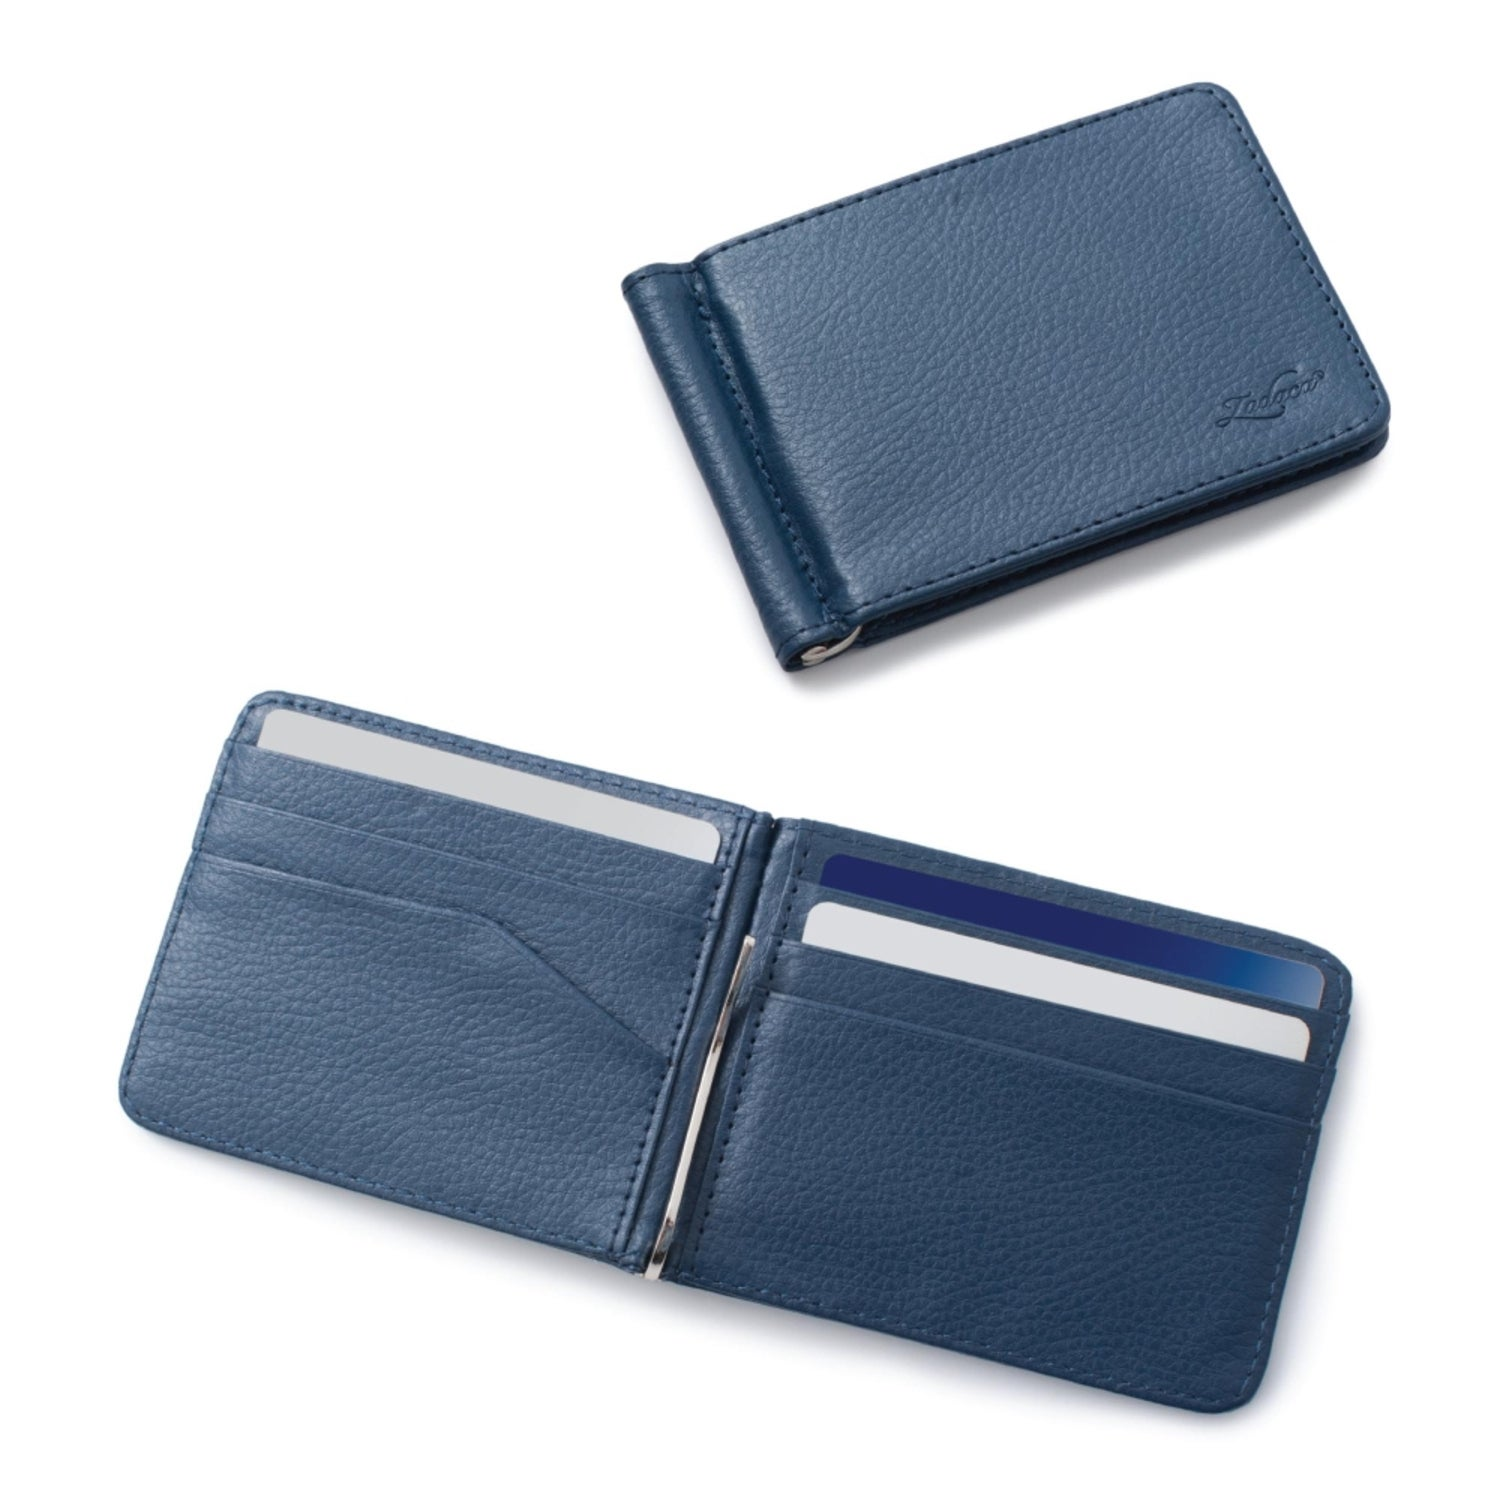 designer fashion c052b a8a89 Zodaca Men's Slim Bifold Leather Wallet Purse Credit Card Holder Executive  Business Card Case with Removable Money Clip